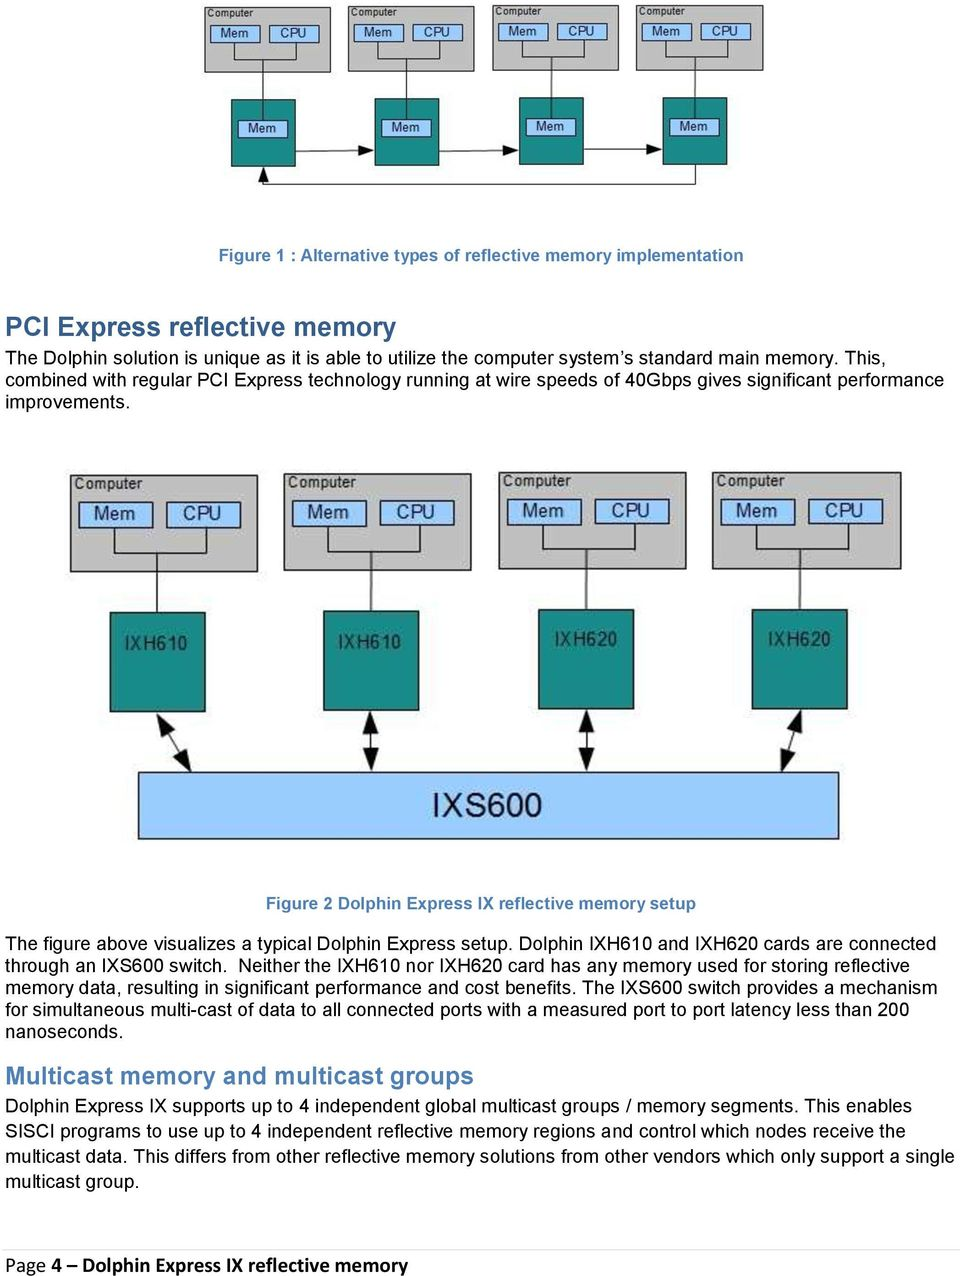 Figure 2 Dlphin Express IX reflective memry setup The figure abve visualizes a typical Dlphin Express setup. Dlphin IXH610 and IXH620 cards are cnnected thrugh an IXS600 switch.